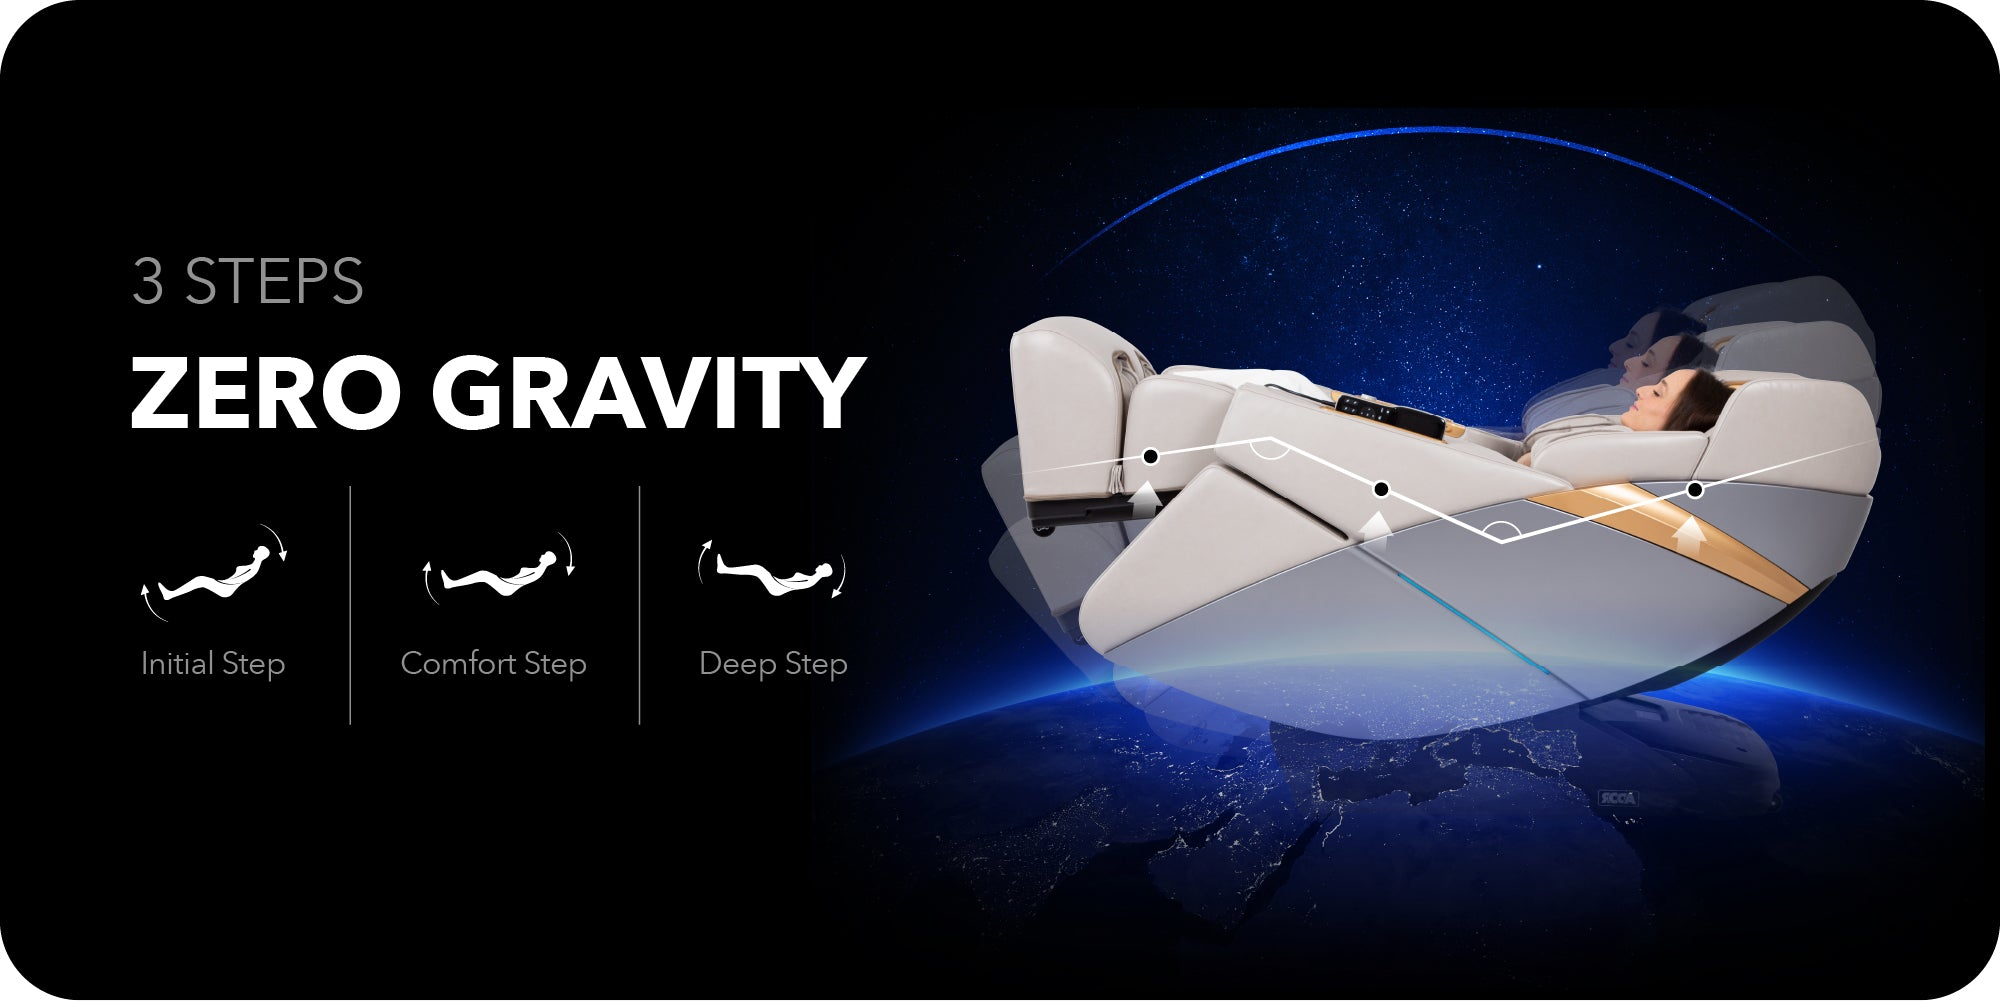 3 Steps of Zero Gravity